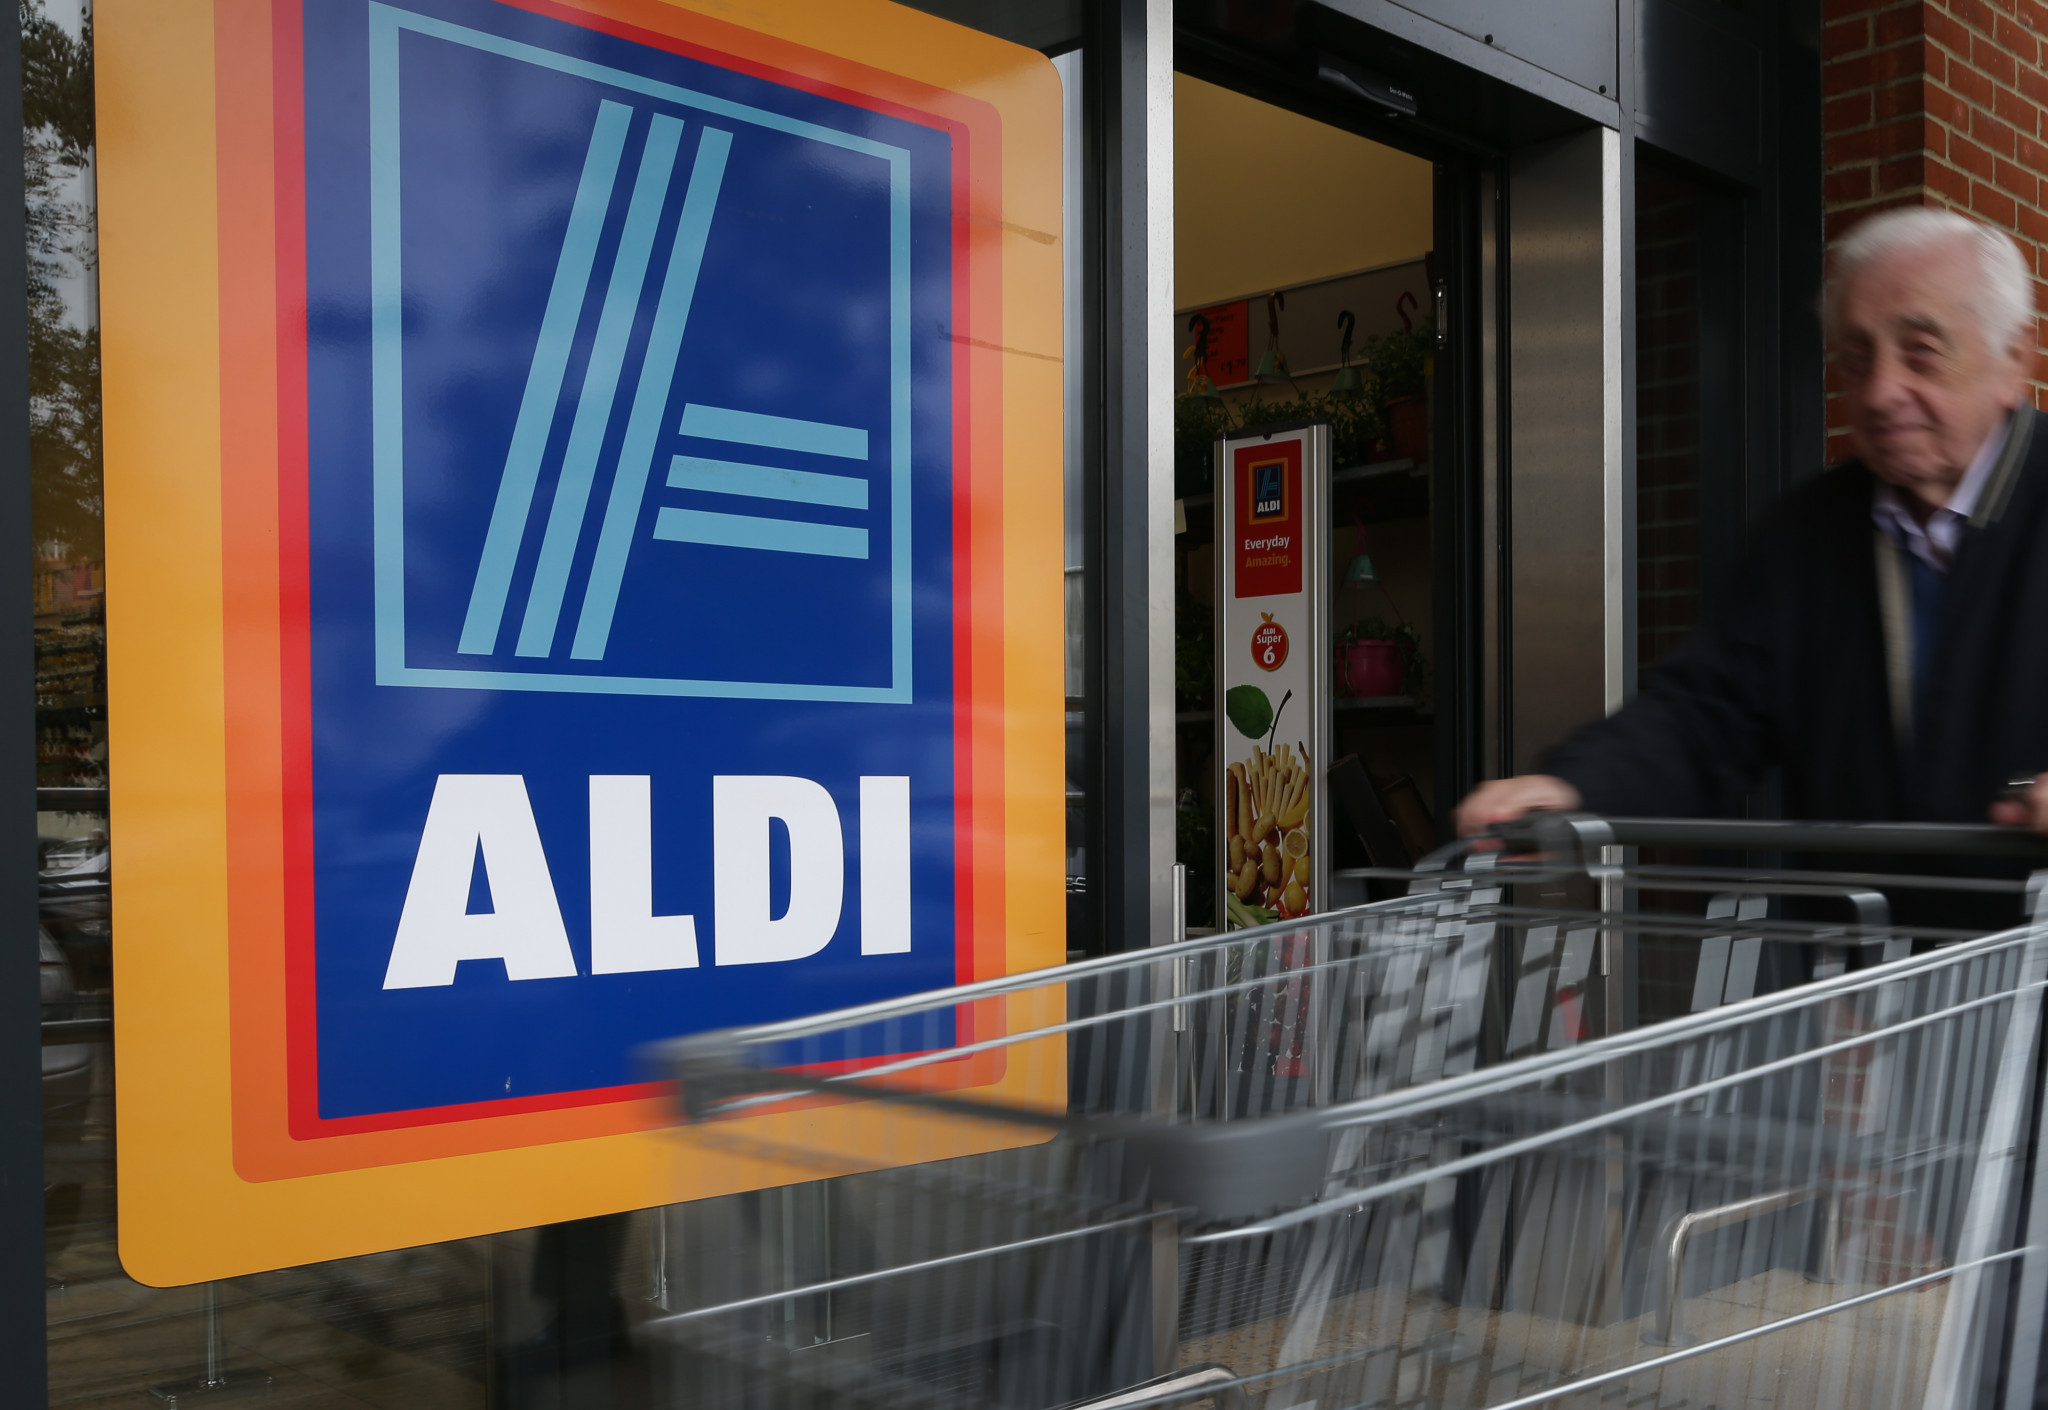 The British Olympic Association has extended its partnership with supermarket chain Aldi until 2025 ©Getty Images